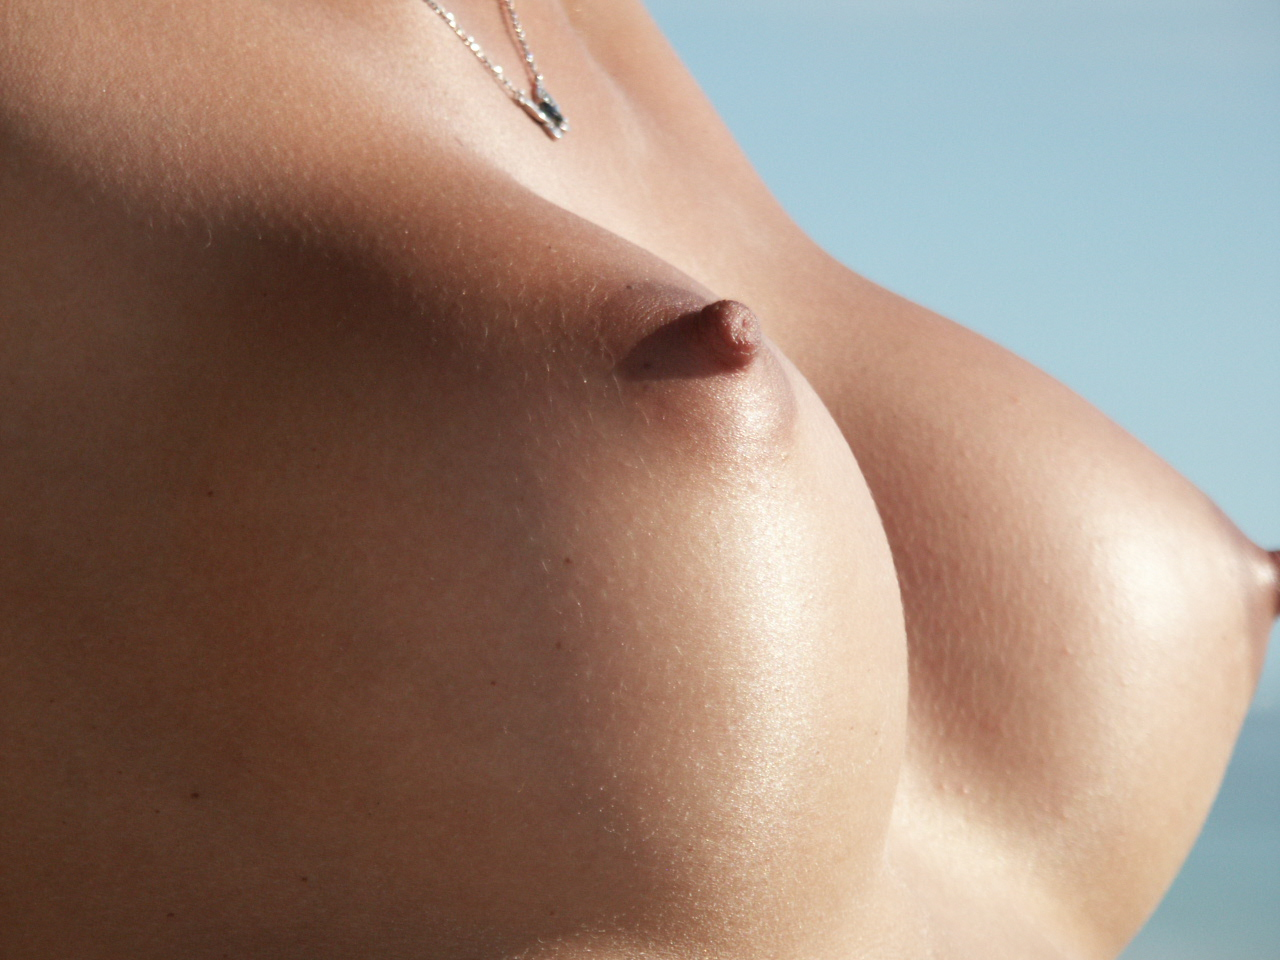 Hard nipple naked girls #14